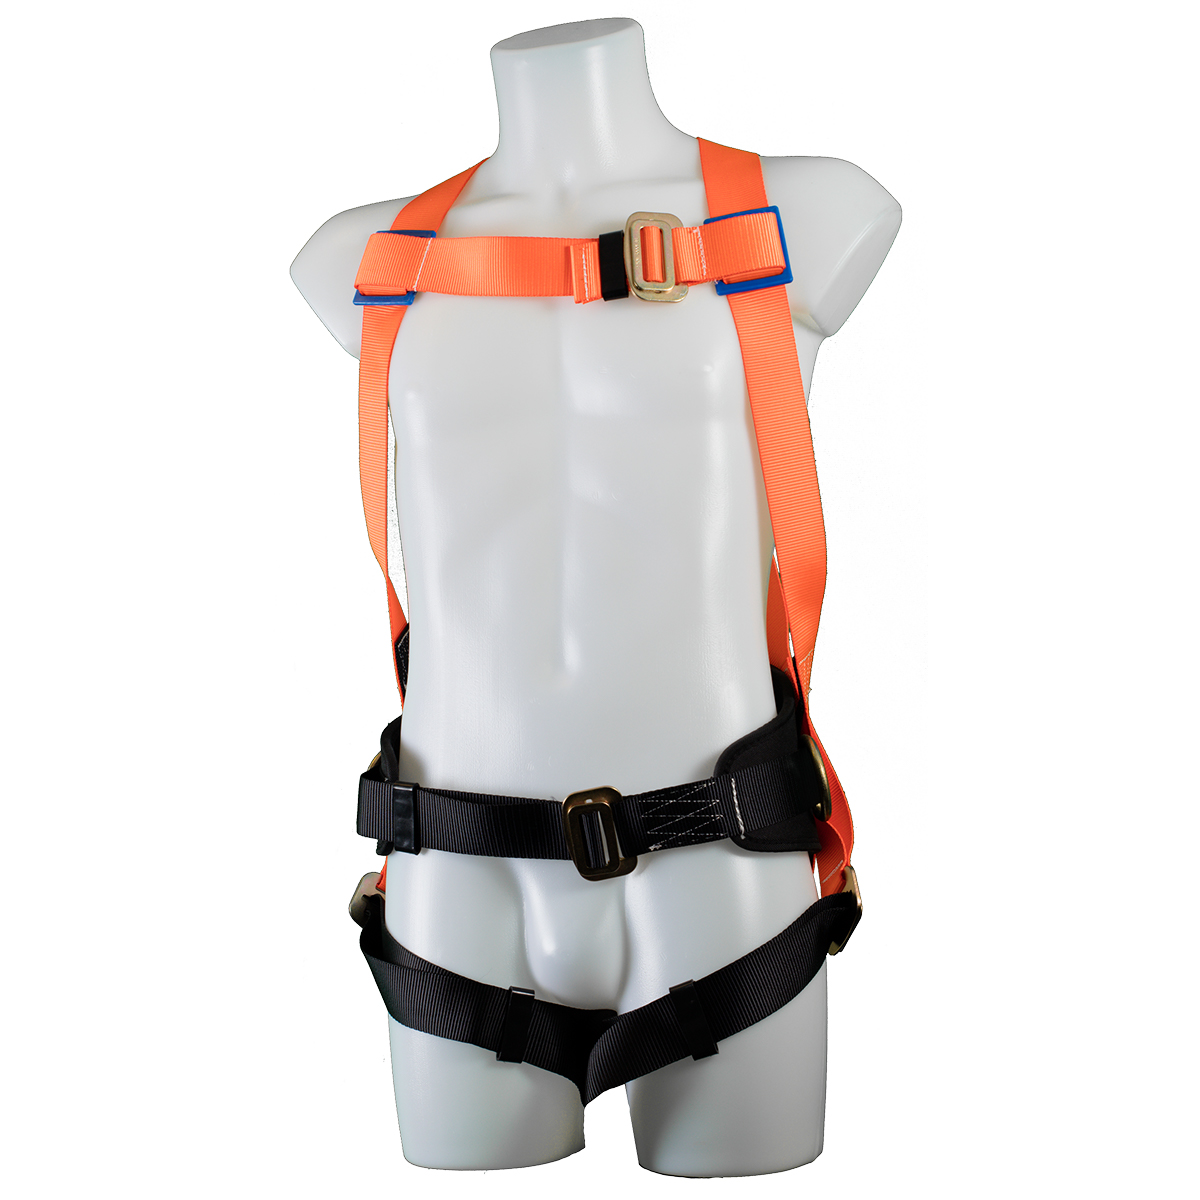 3 point comfort body harness